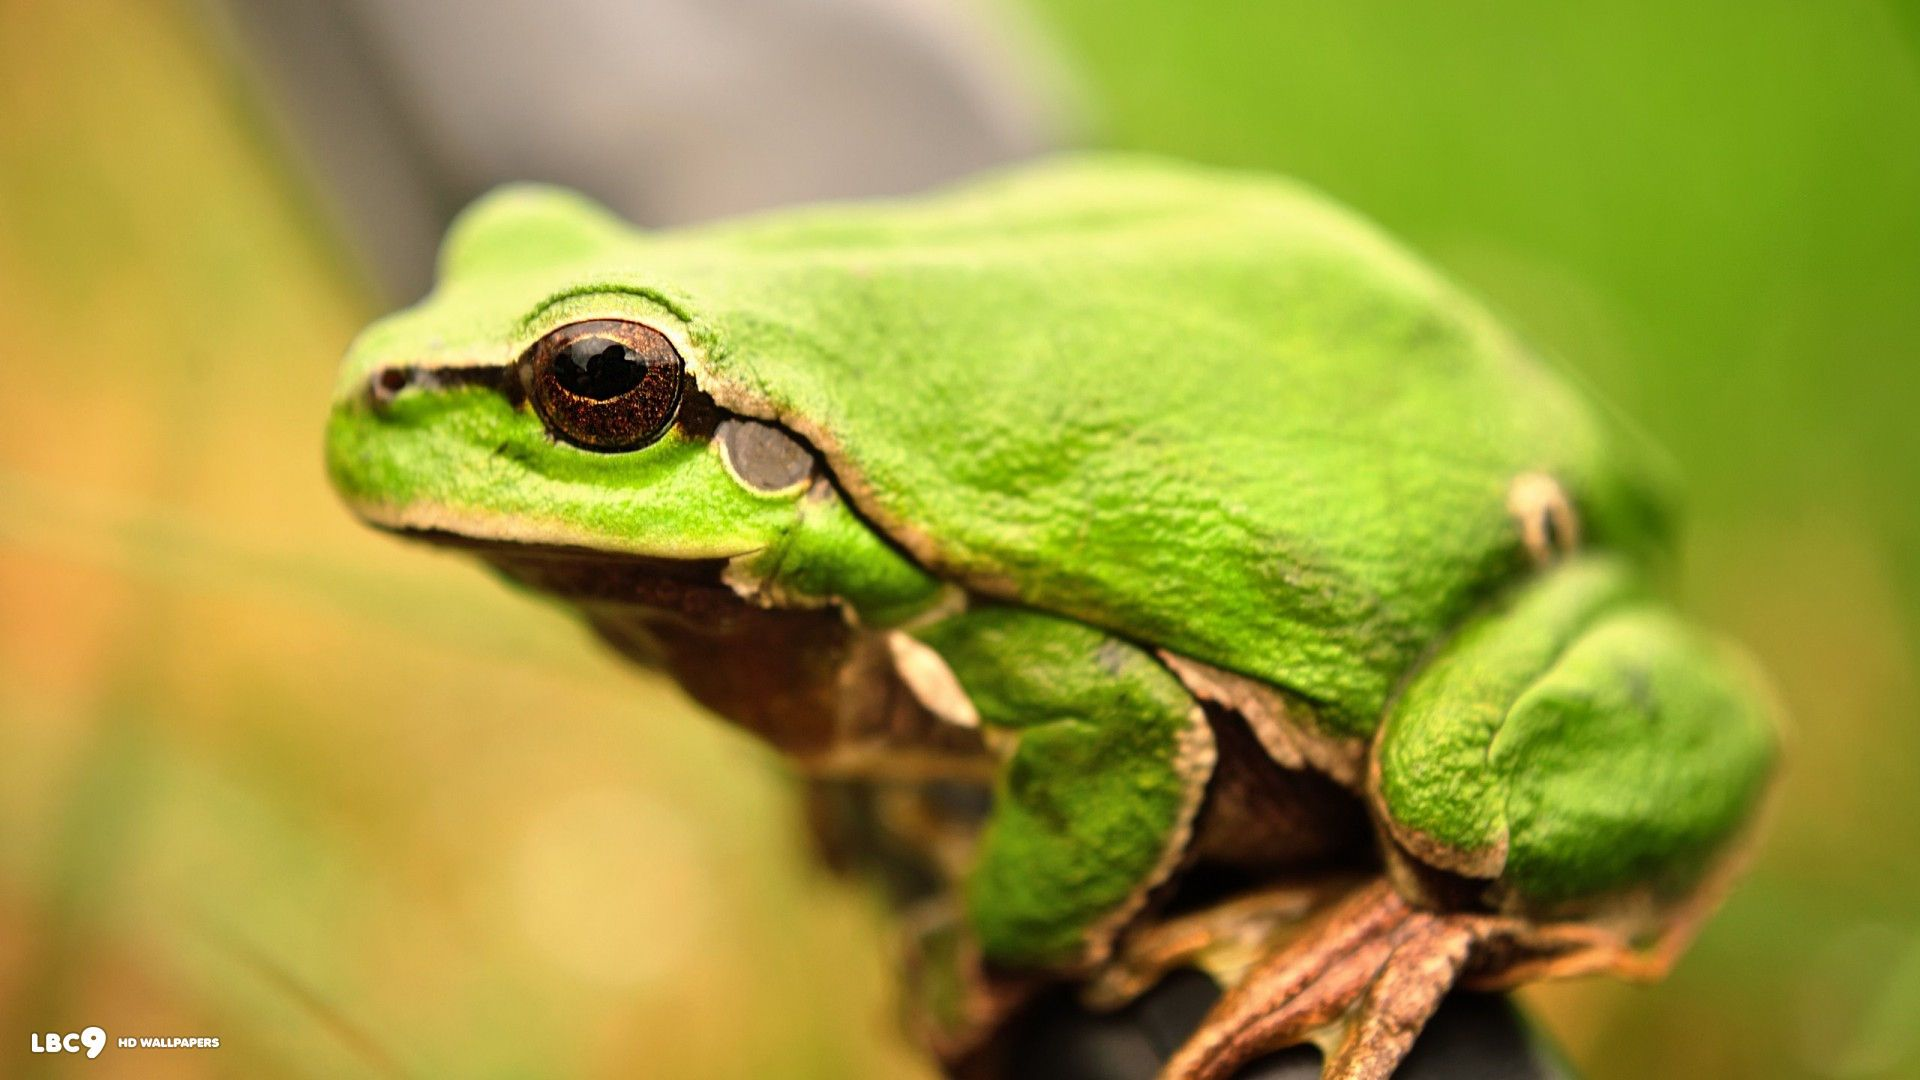 frog wallpaper 186 reptiles and amphibians hd backgrounds 1920x1080